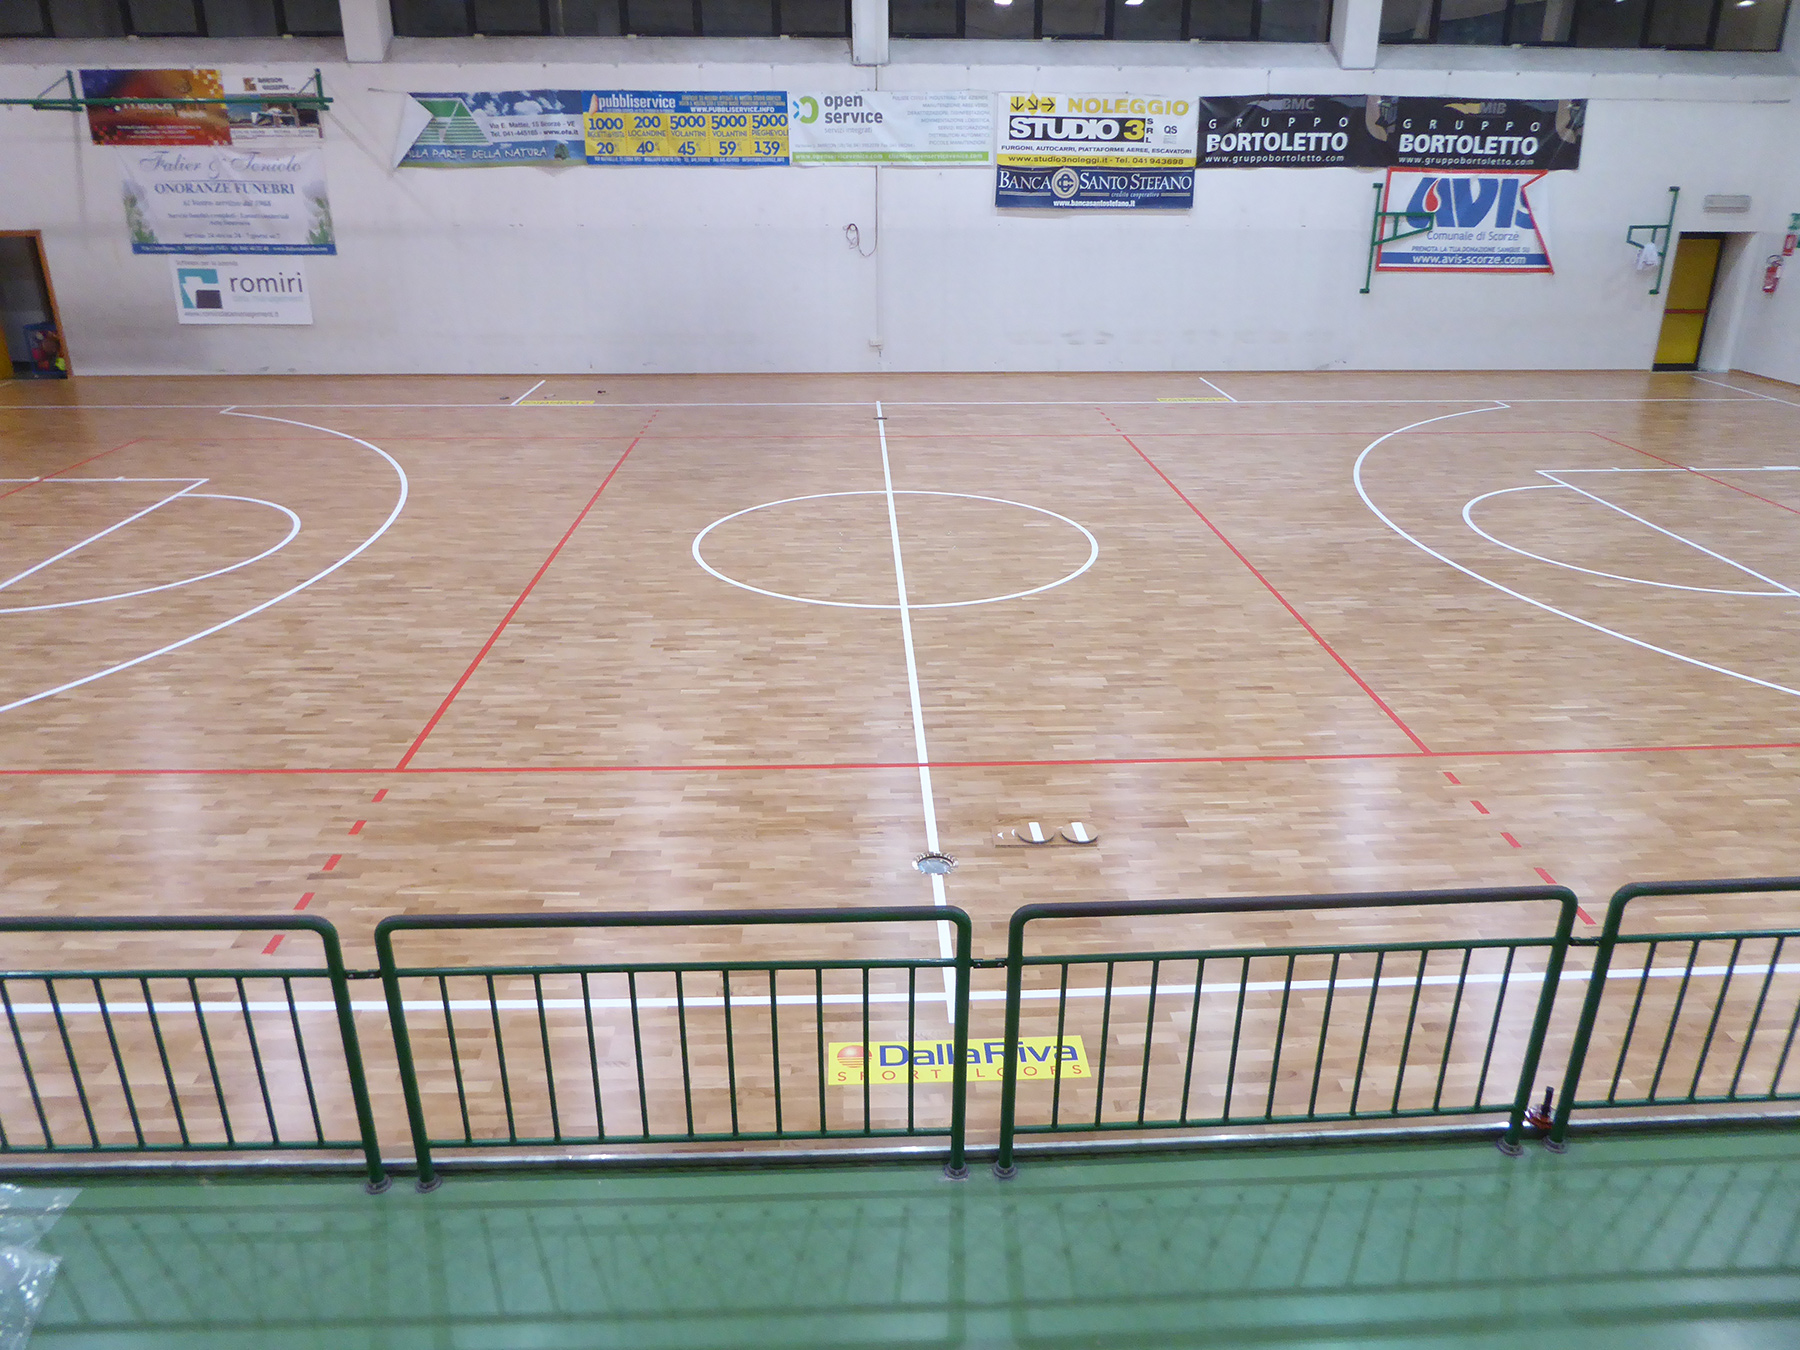 The sports flooring finished